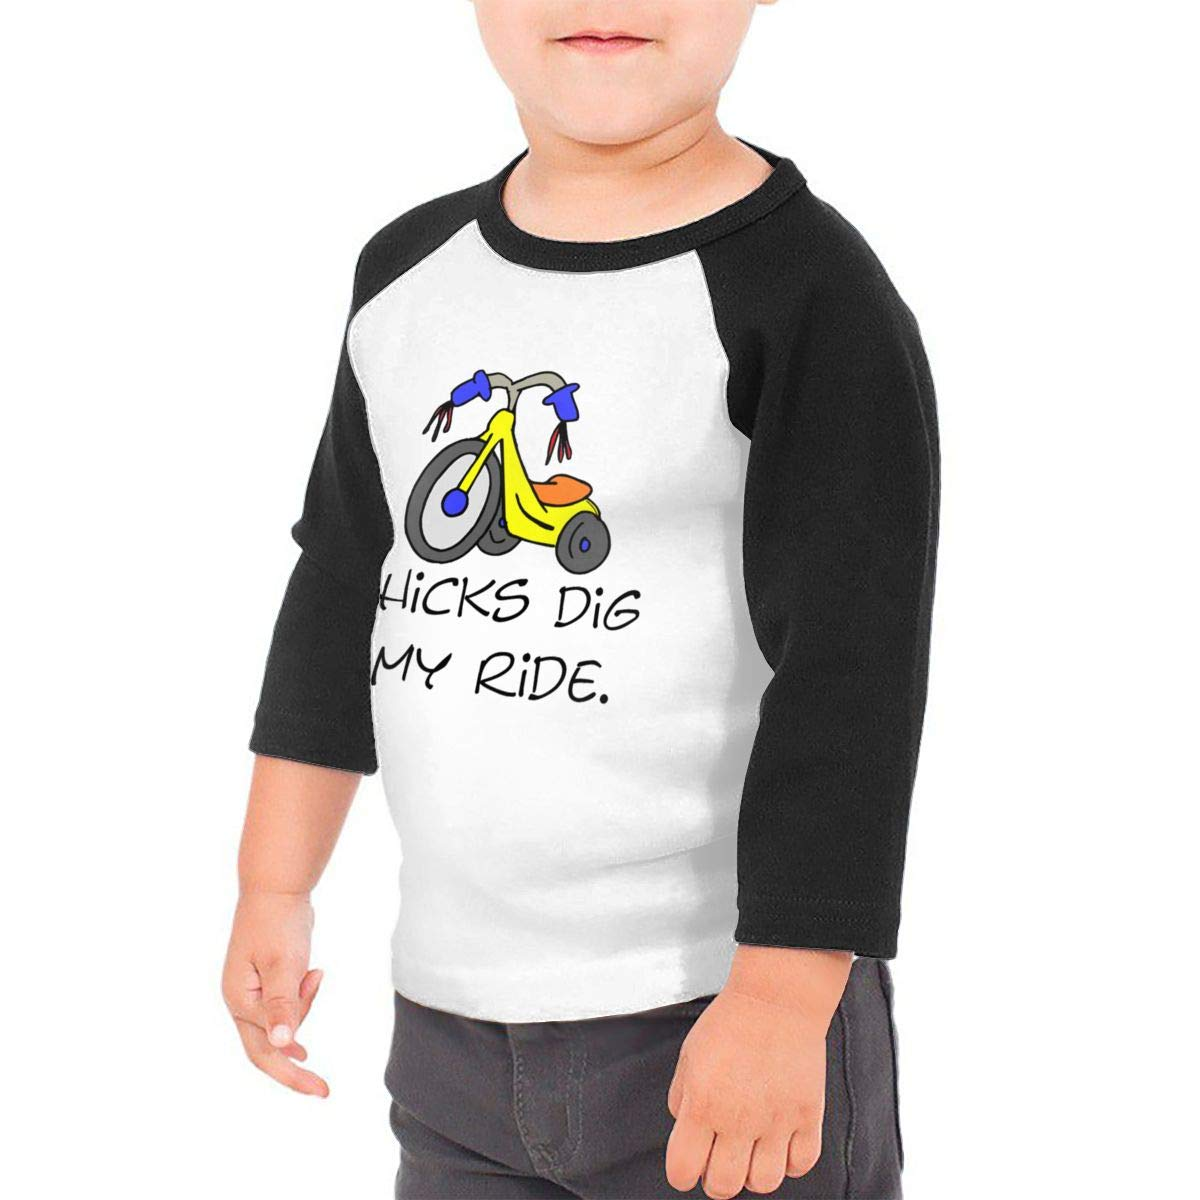 Chicks Dig My Ride Raglan 3//4 Sleeve T-Shirt for Girls Boy